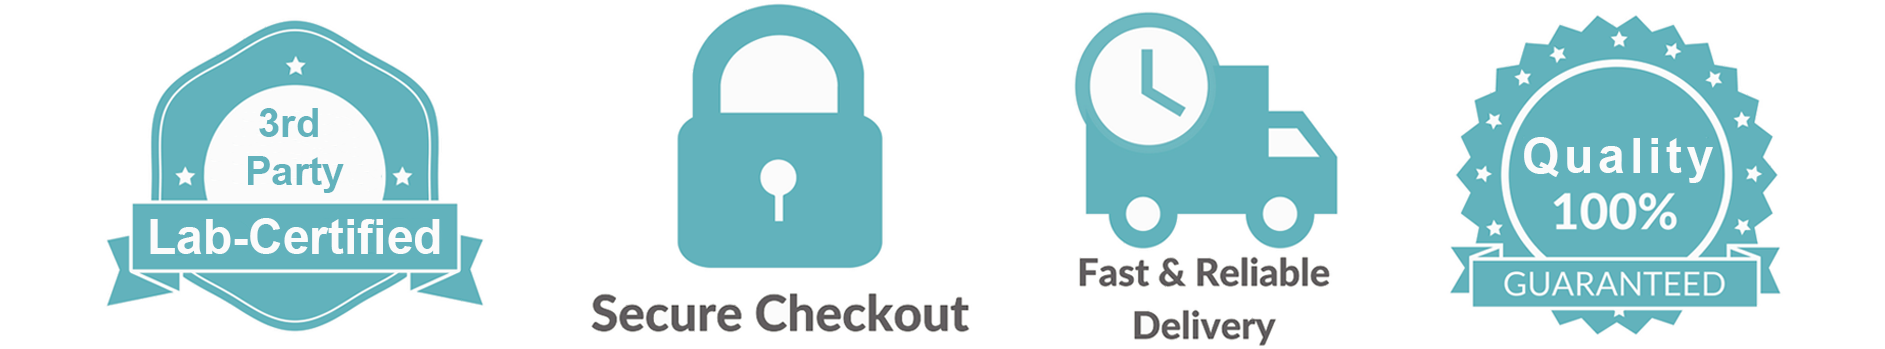 Badge icons for lab-certified CBD, secure check-out, fast delivery, and quality guarantee